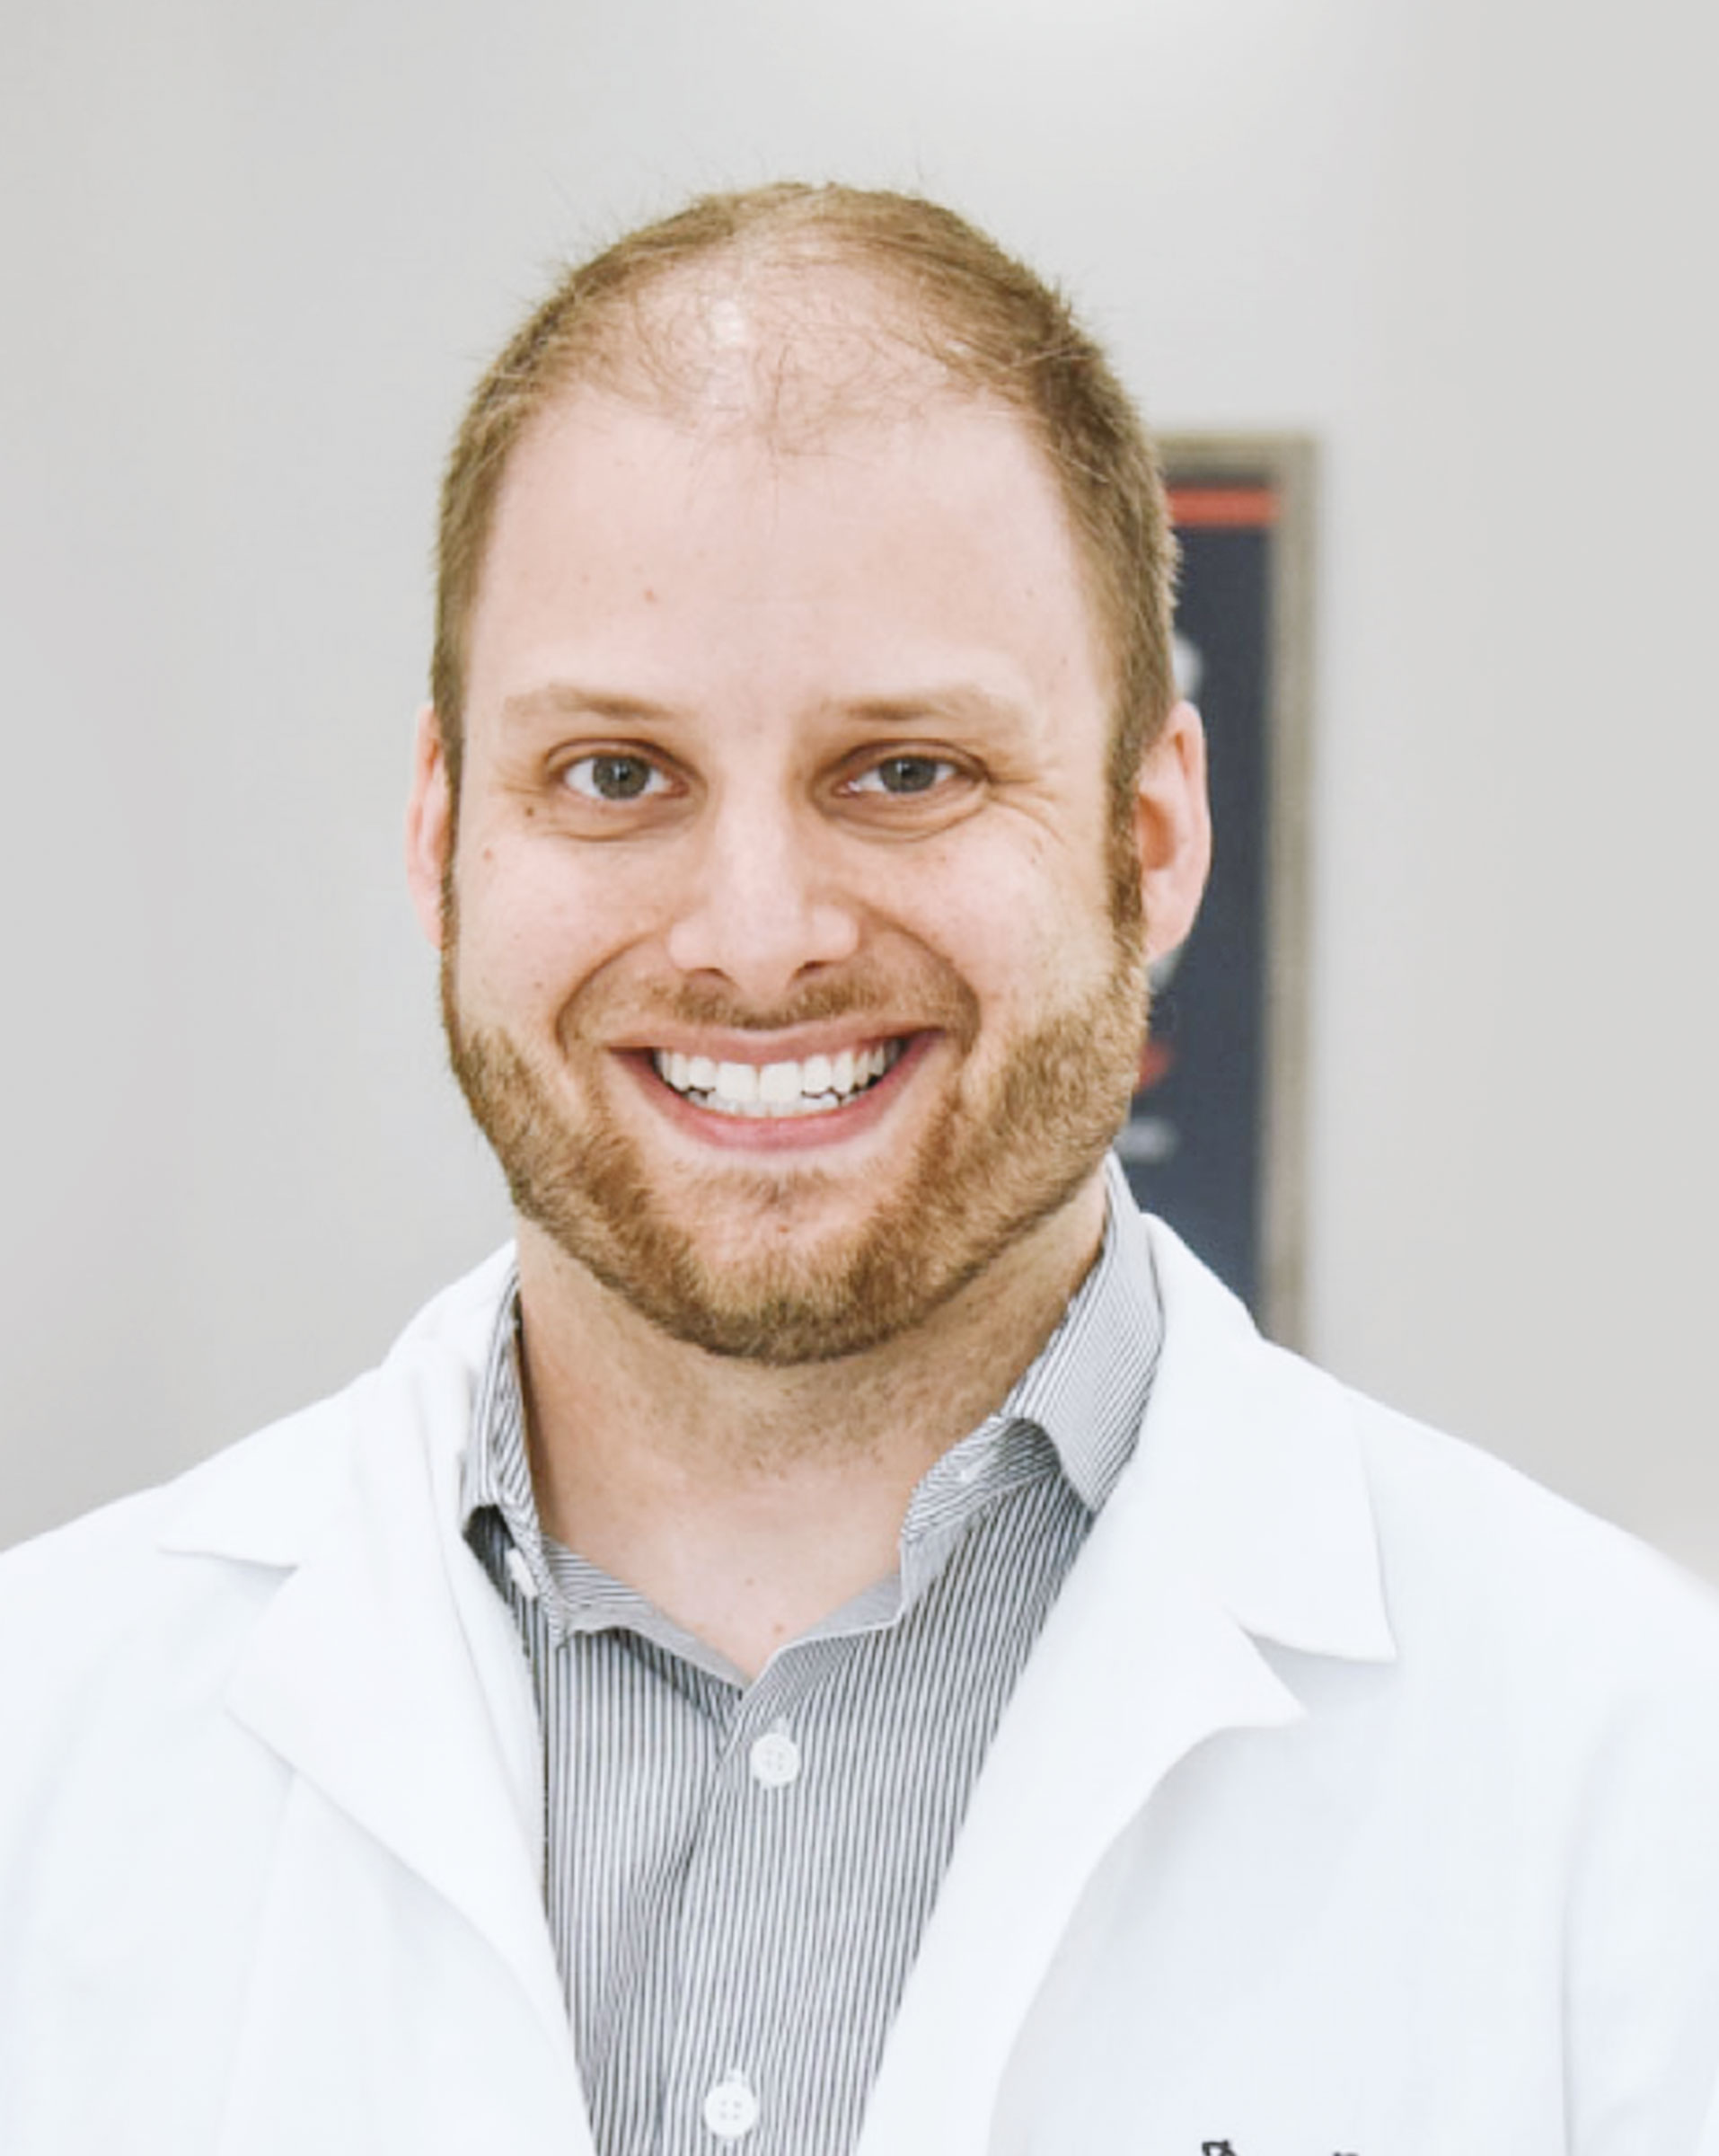 One of Our Optometrist On Our Team, Dr. Ryan Beck